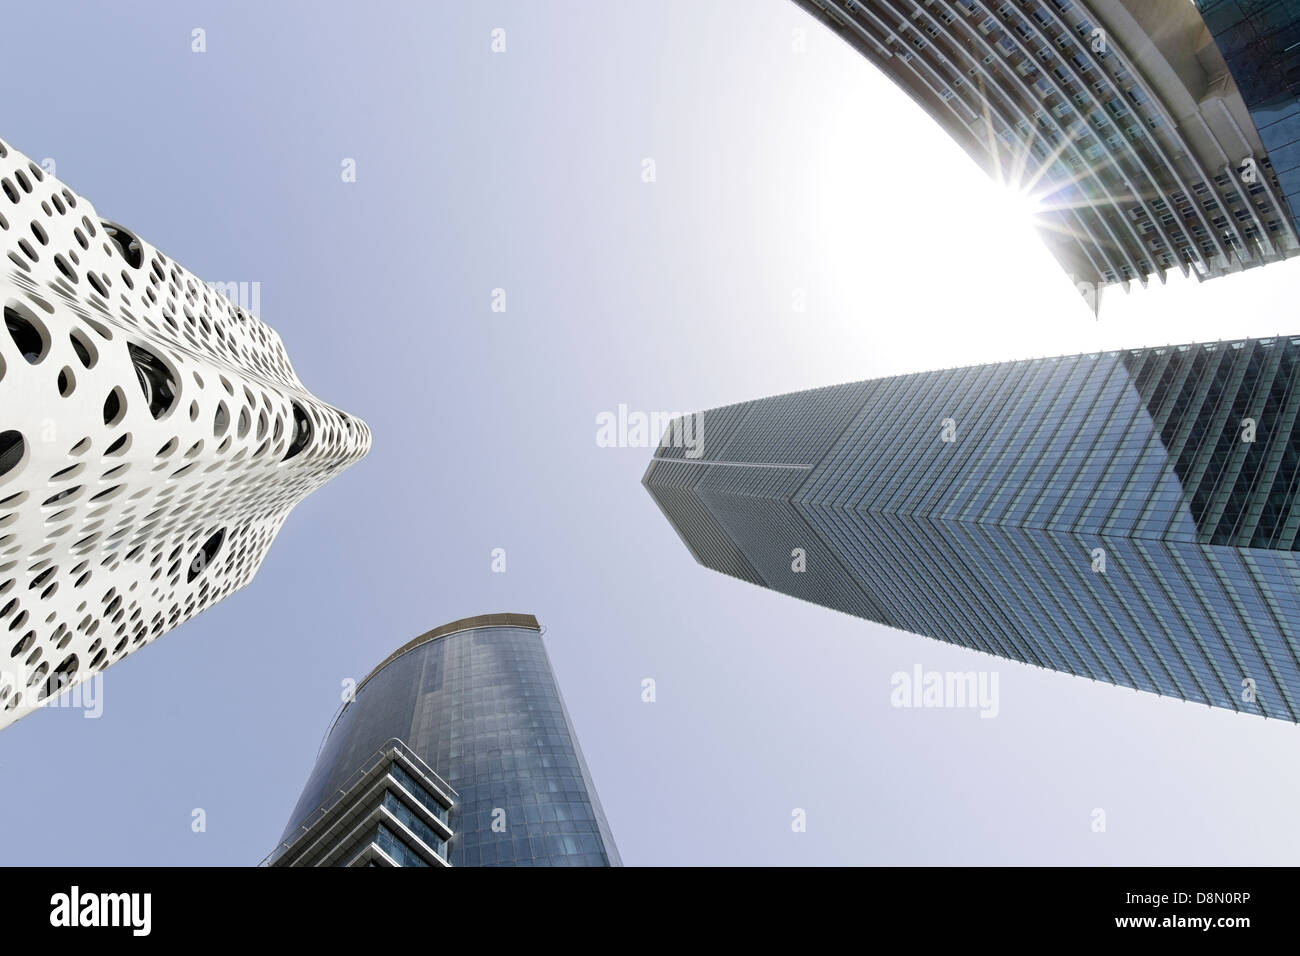 O 14 Office Tower, Dubai, United Arab Emirates